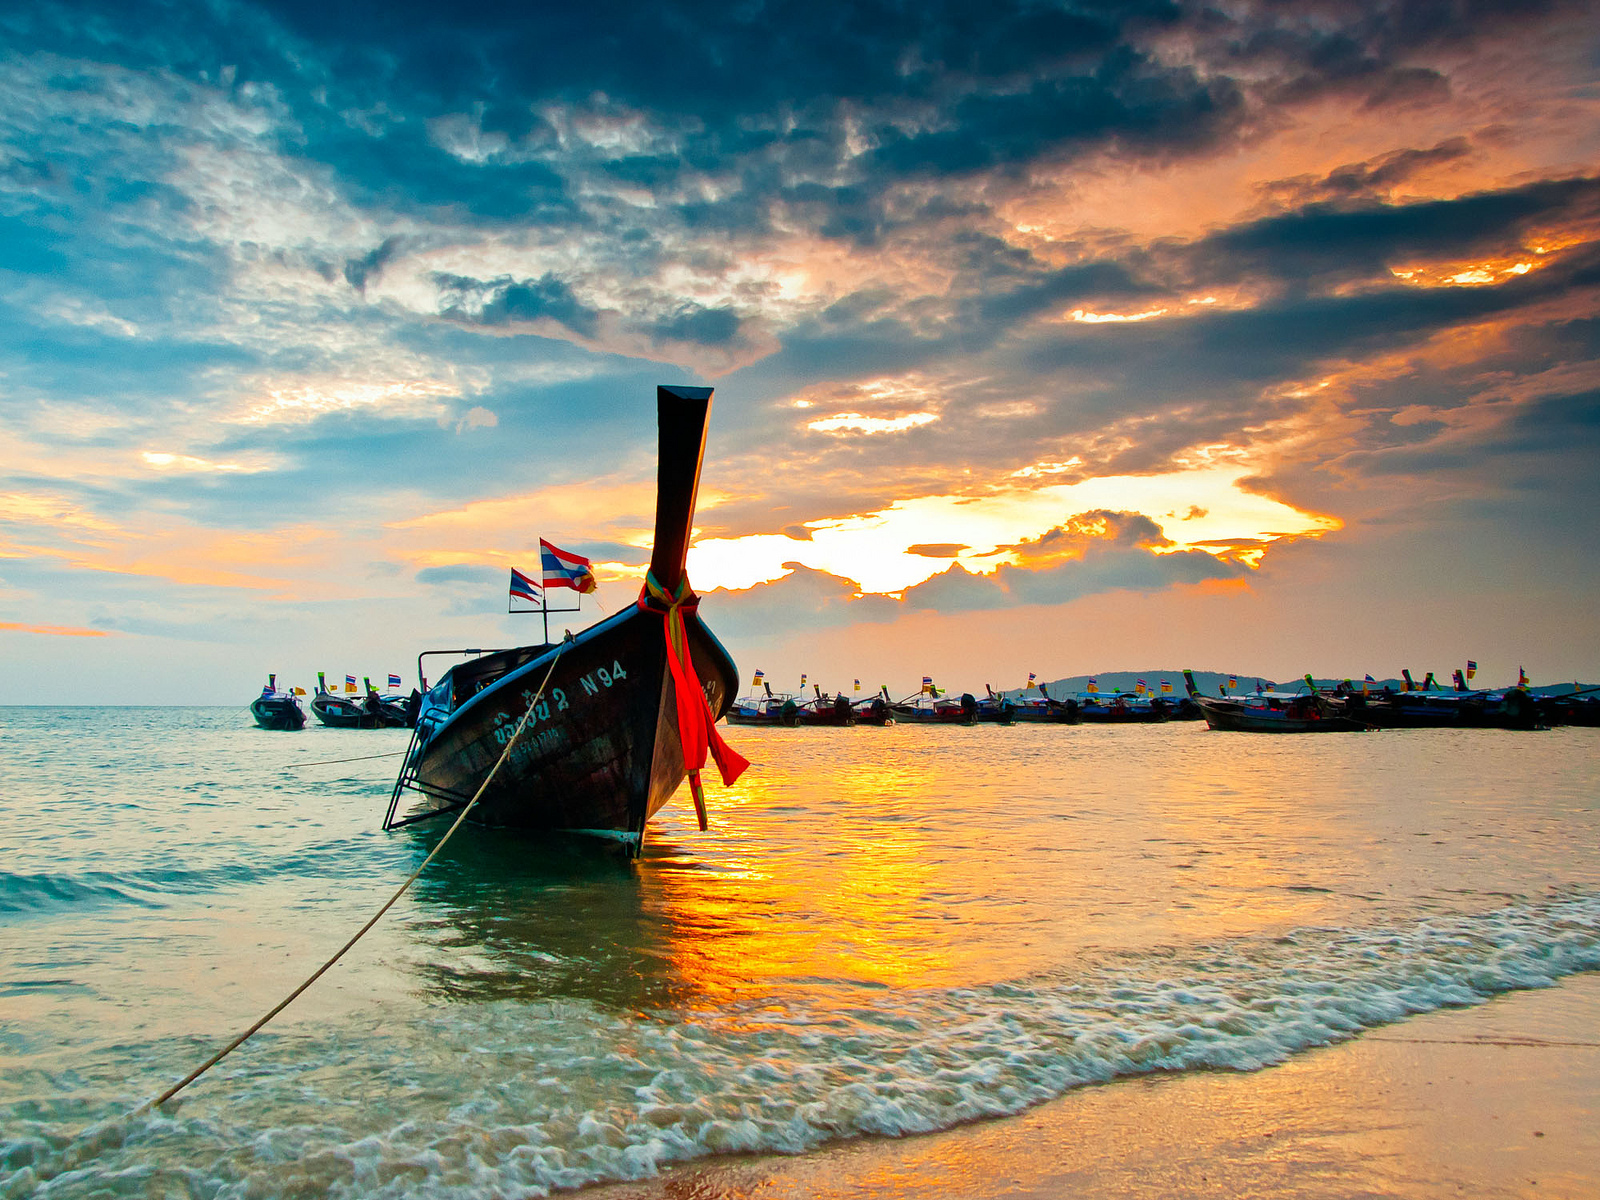 A longboat on the beach in Krabbi, Thailand. Image credit:    Mikhail Koninin   /Flickr